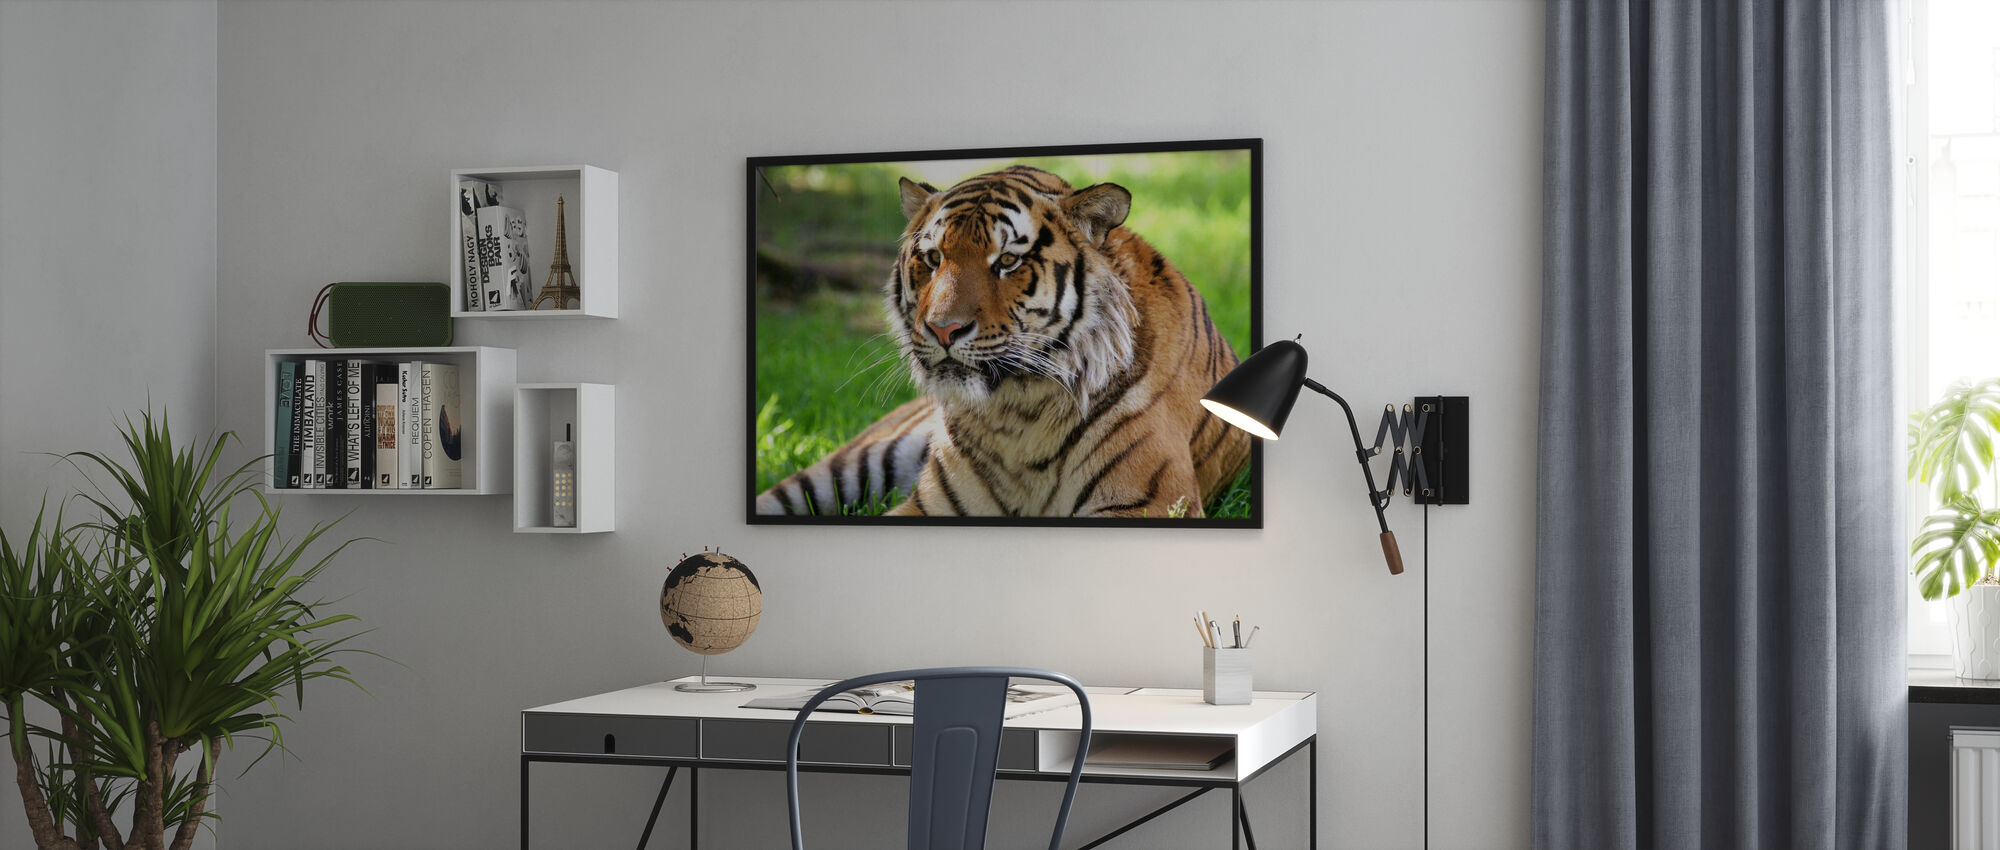 Tiger - Poster - Office